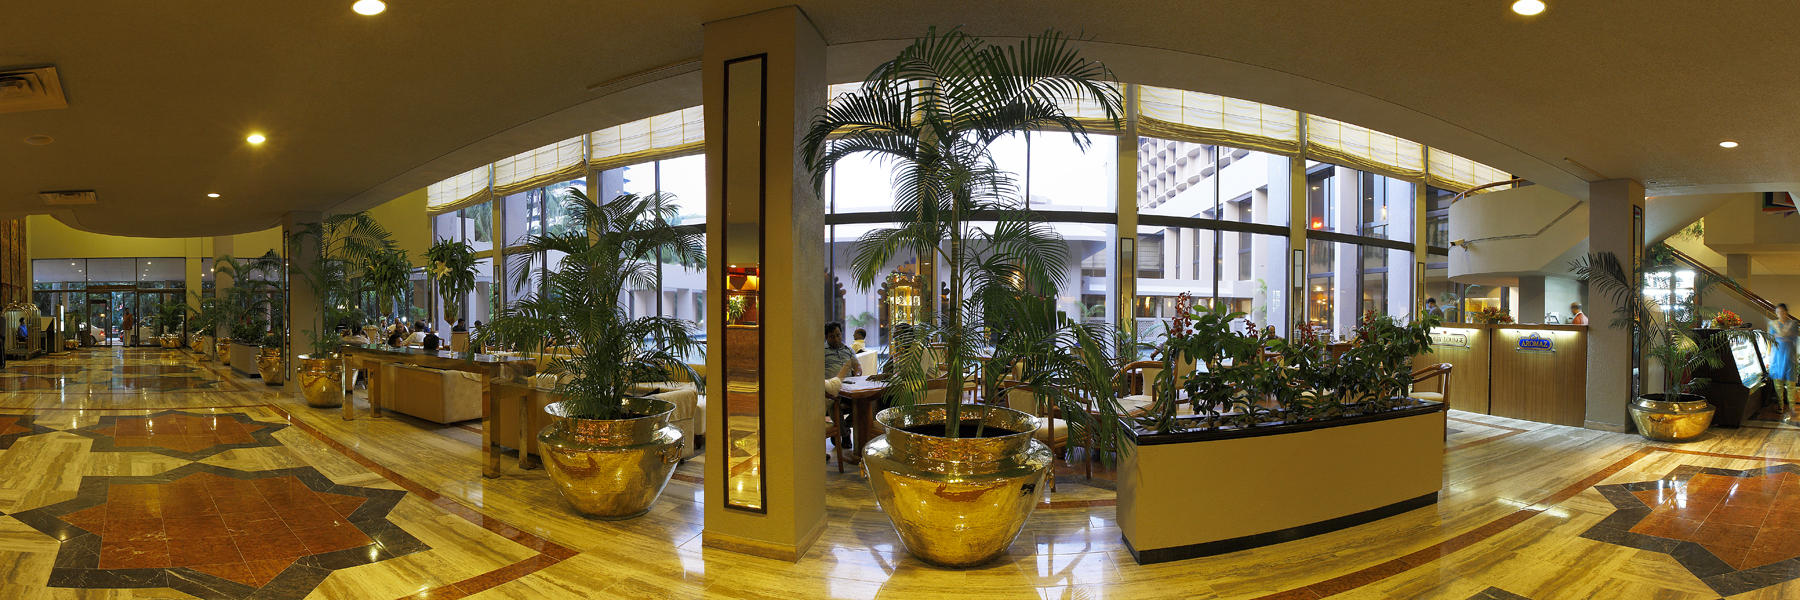 PanPacificSonargaon_Lobby.jpg